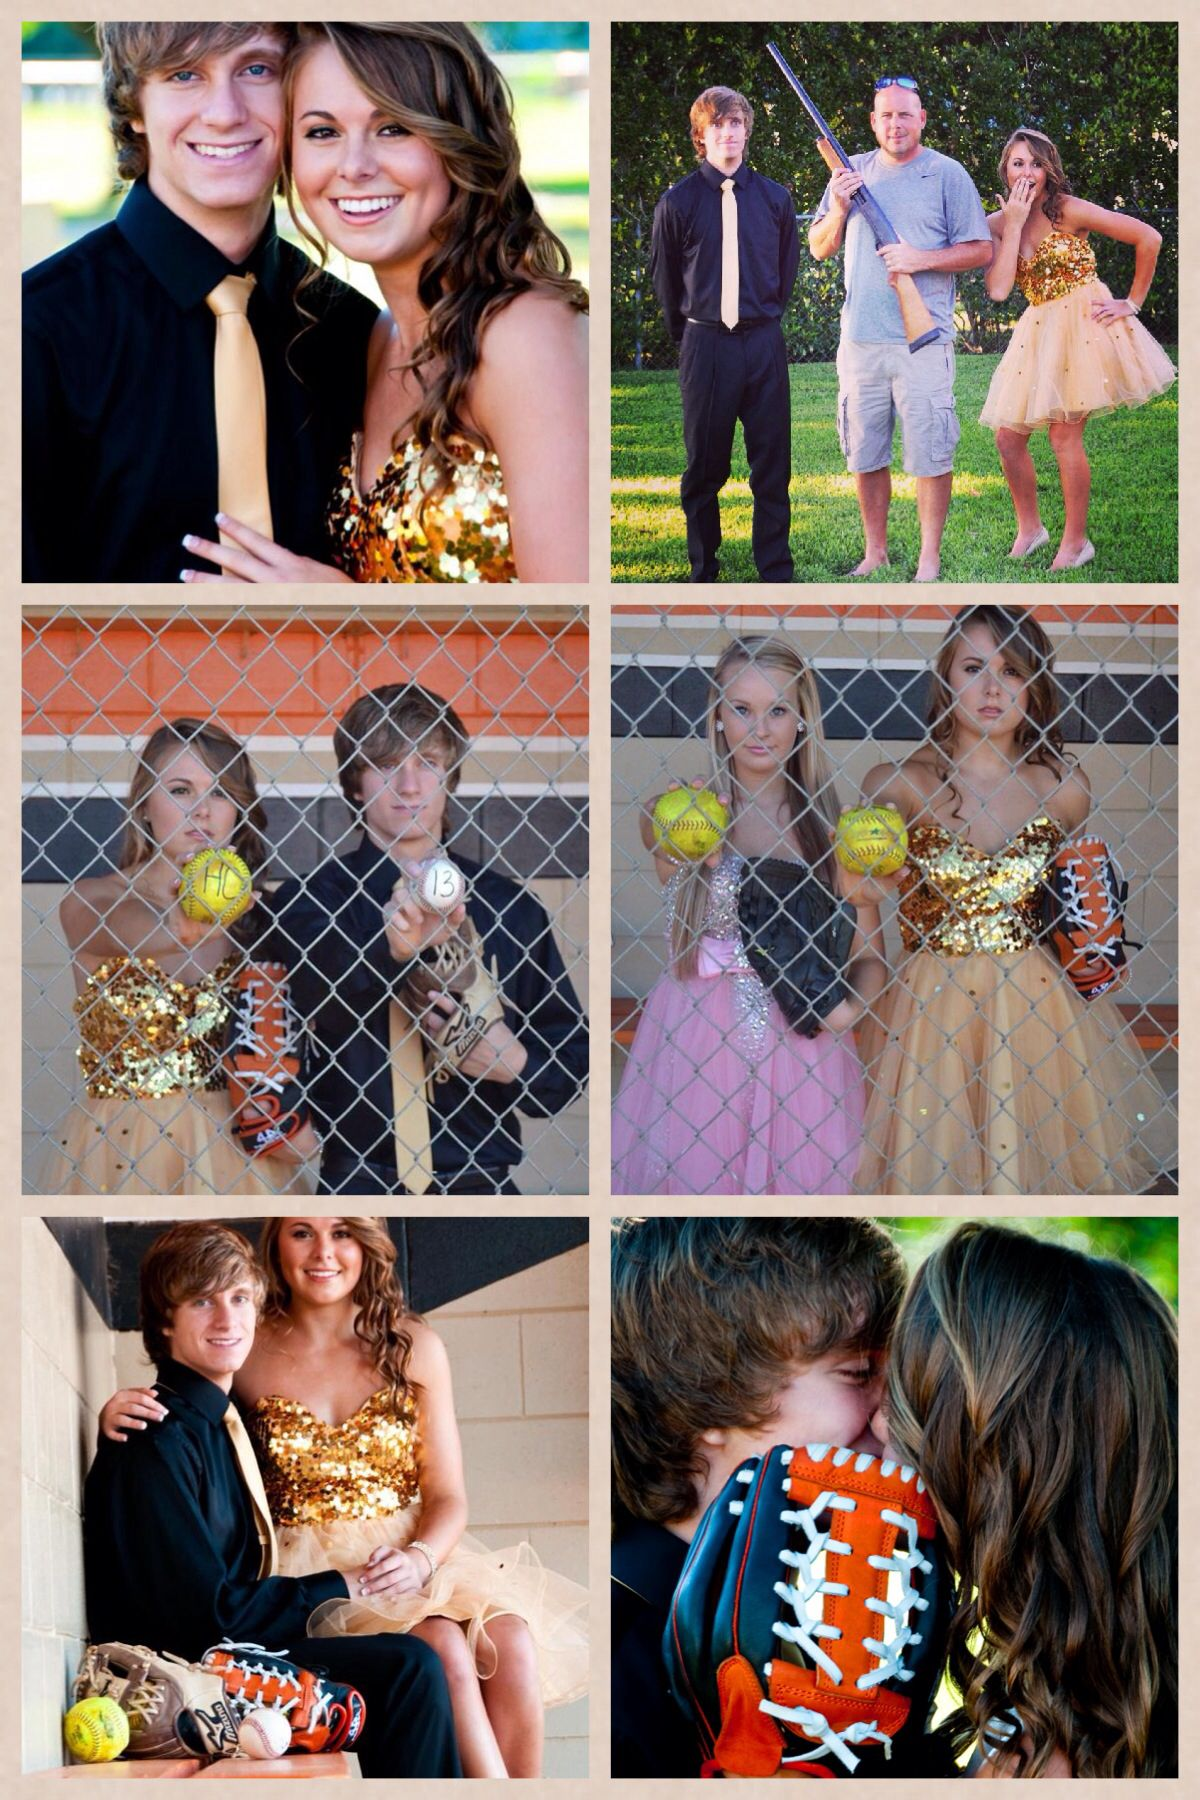 Homecoming Pic Cutest Thing Ever Ill Have This My Senior Year No Doubt But The Guy Is My Mystery Right Now Softball Baseball